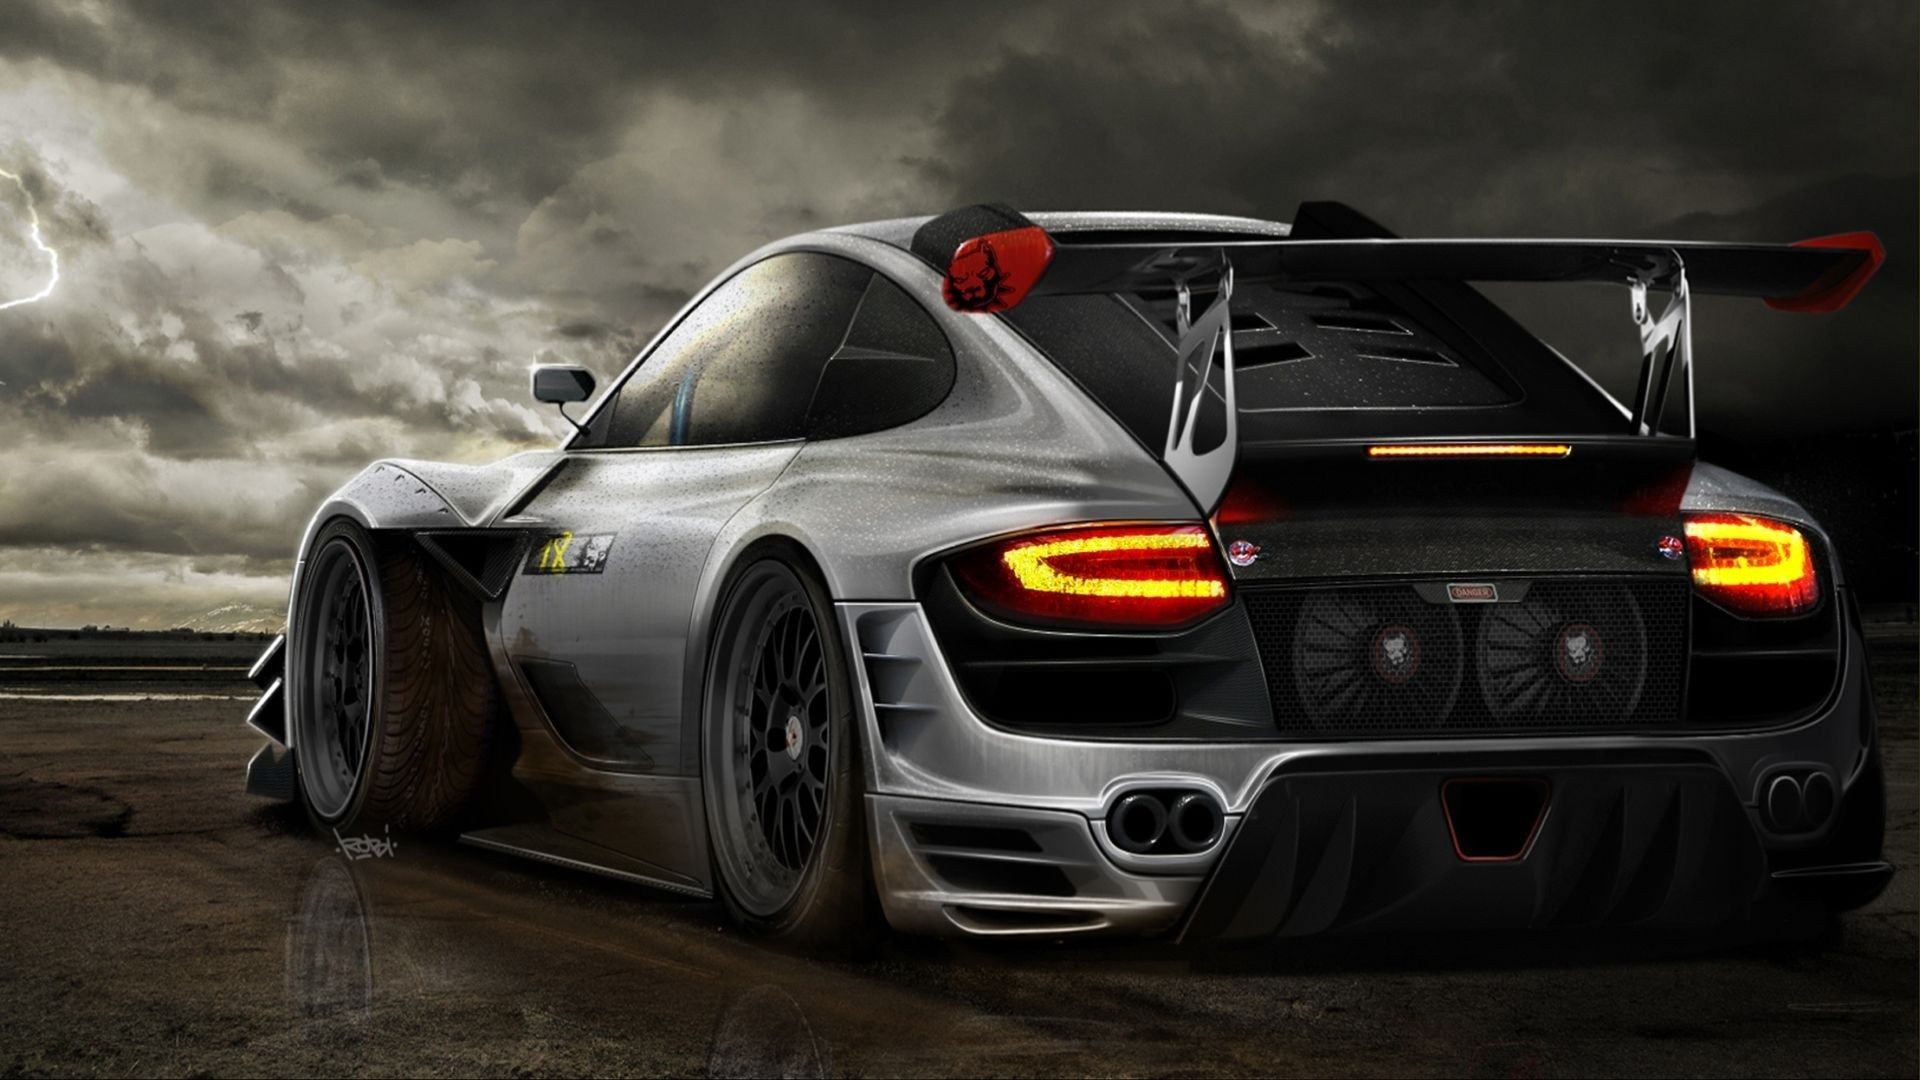 Free Cars Tuning d Fresh Hd Wallpapers Download 1920×1080